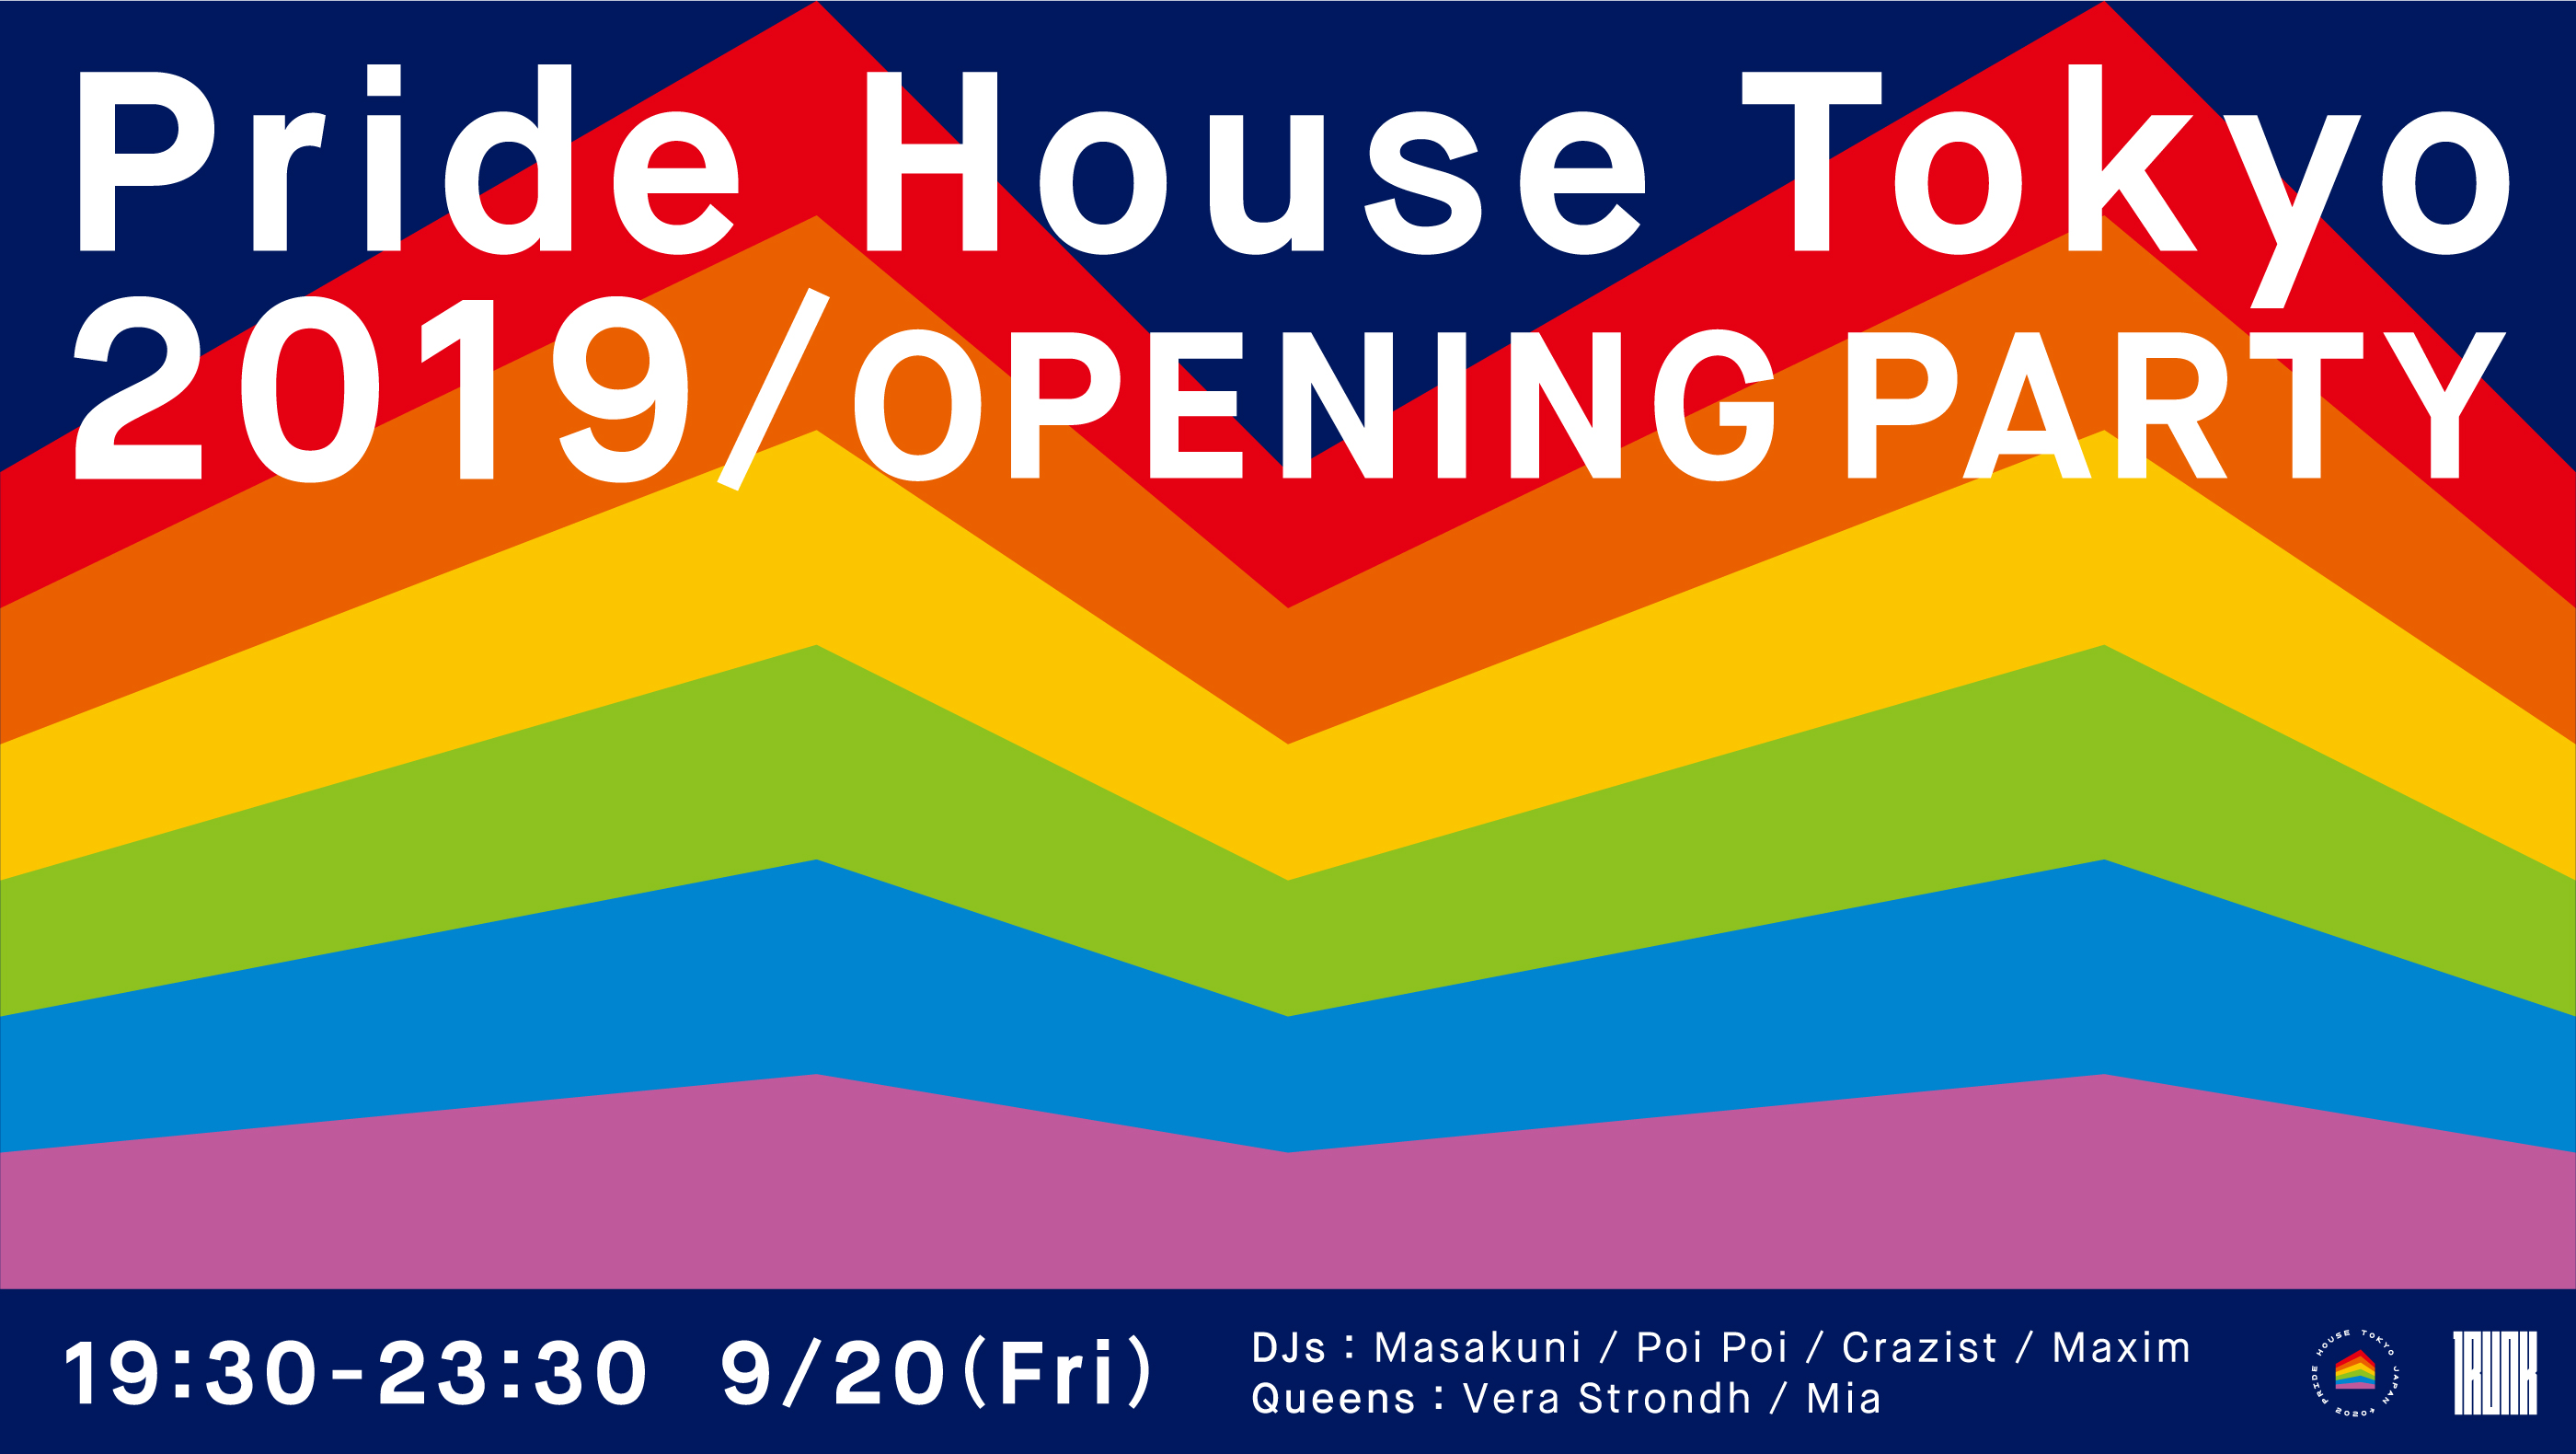 Pride House Tokyo 2019 Opening Party